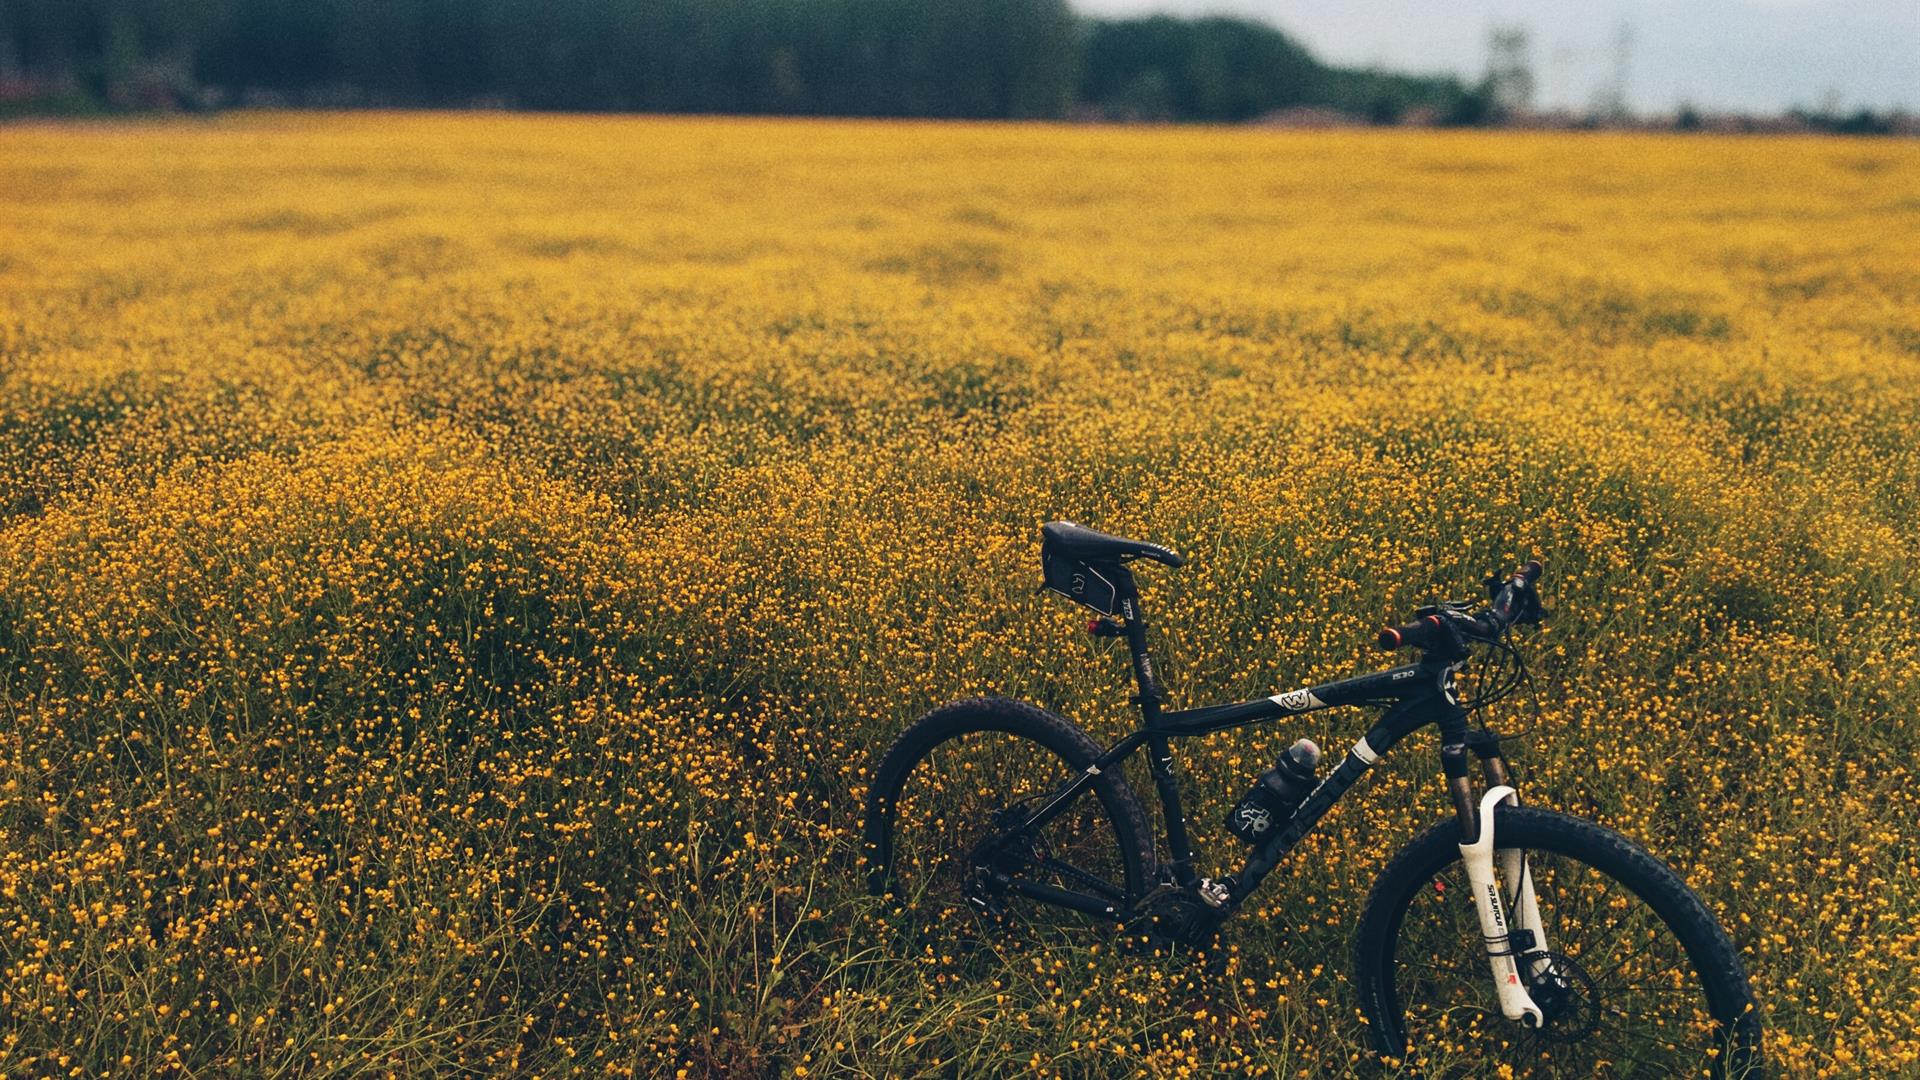 Semih Aydin 32382 Unsplash Bike